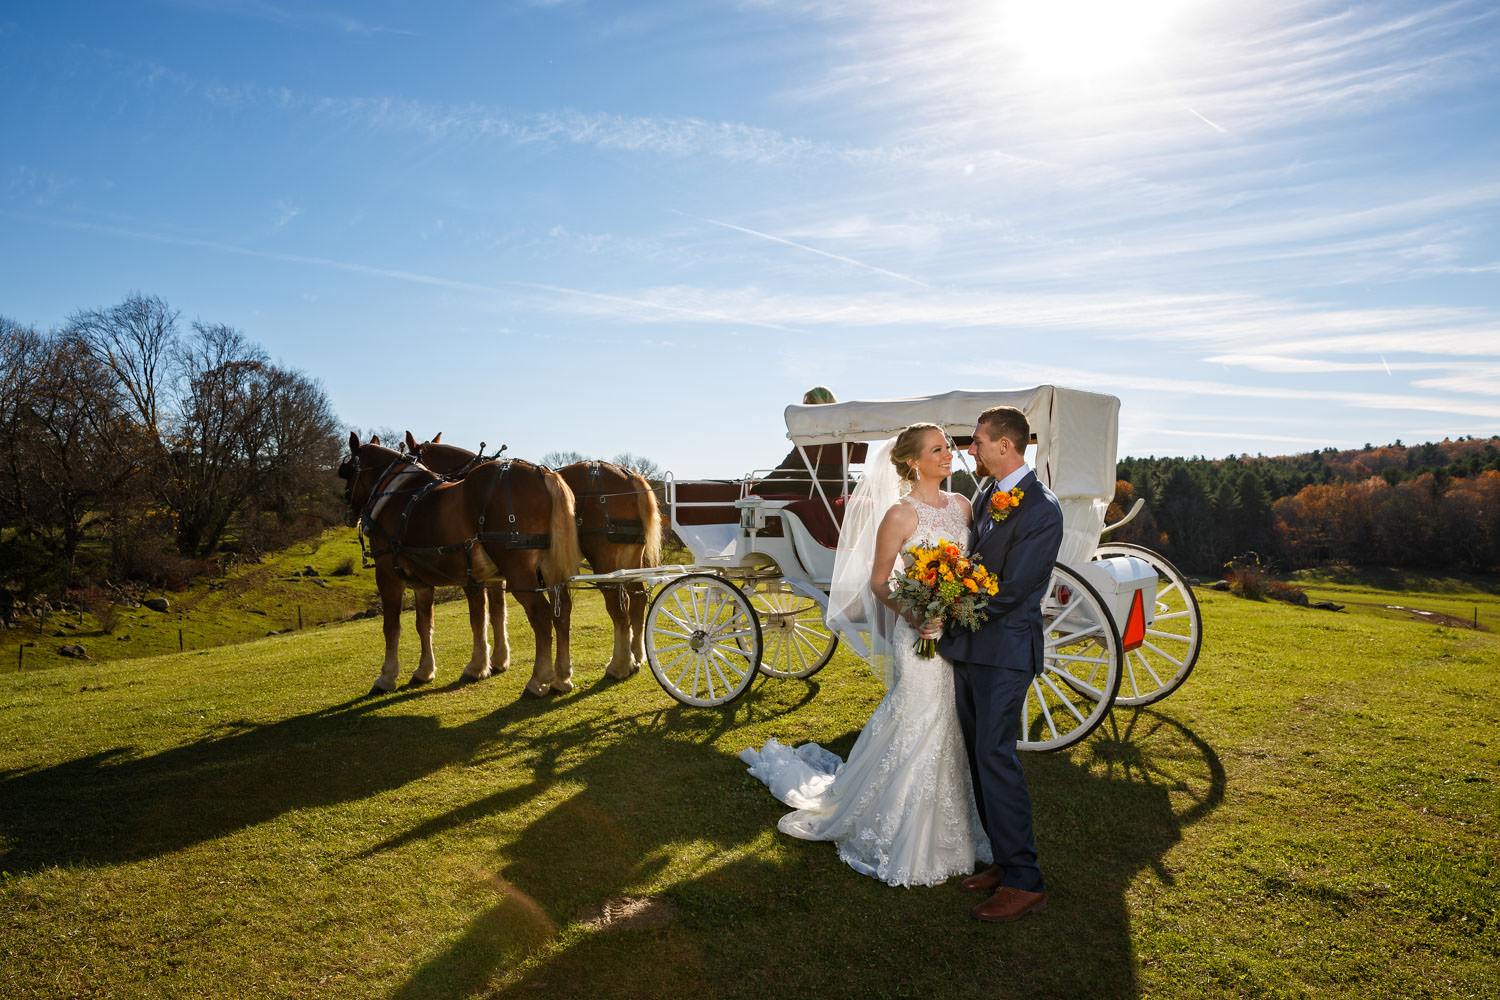 Bride and groom in front of horse drawn carriage at the Salem Cross Inn